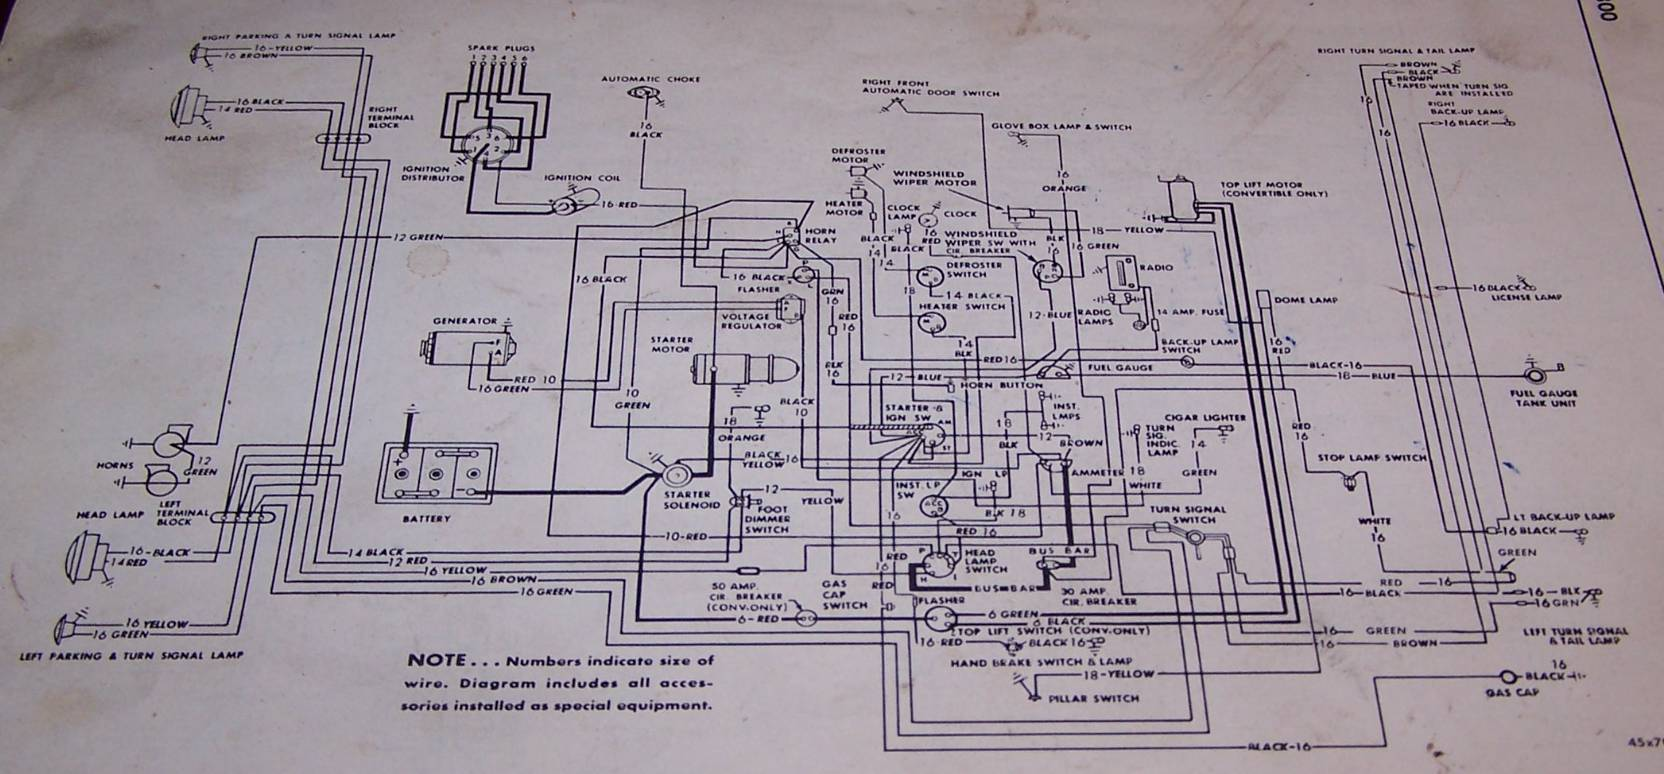 hight resolution of 1966 dodge wiring diagram wiring libraryold mopar information 95 dodge truck wiring diagram dodge wayfarer wiring